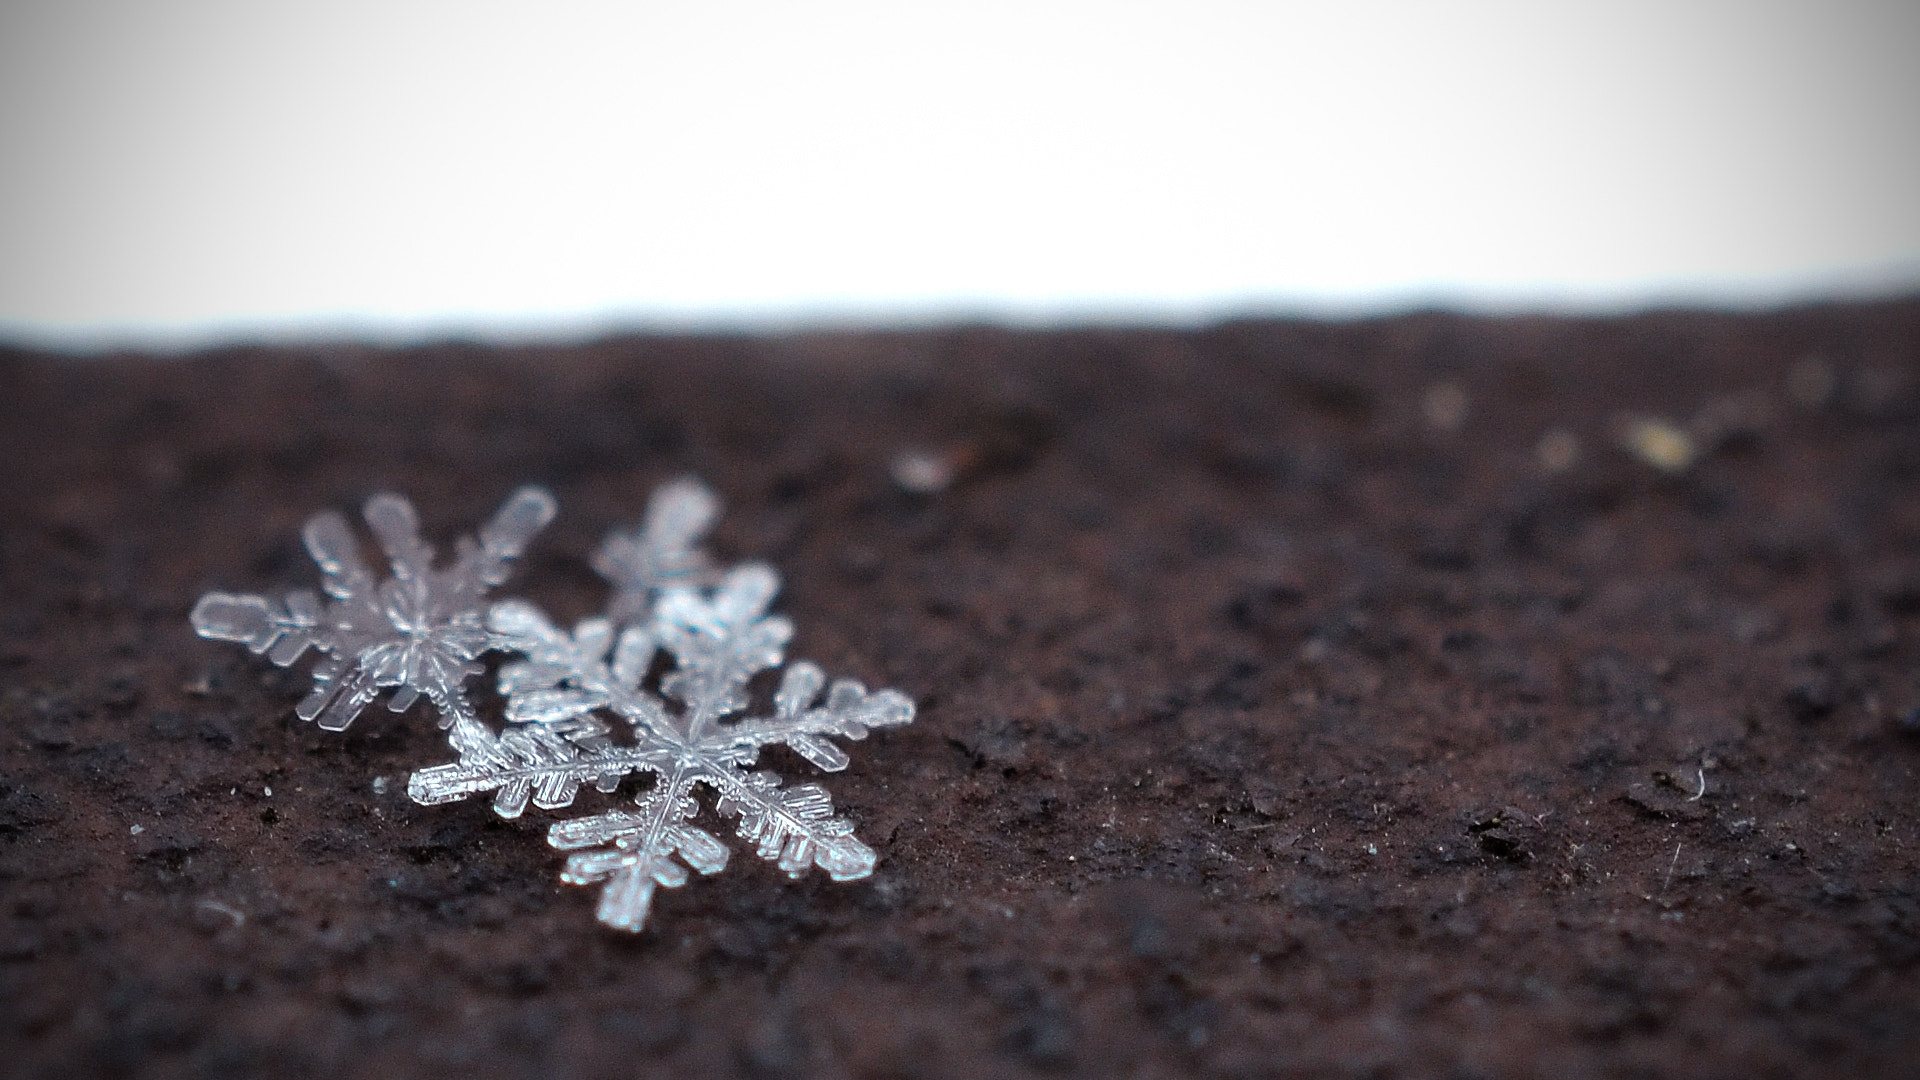 Photograph Snowflake by R Smit on 500px